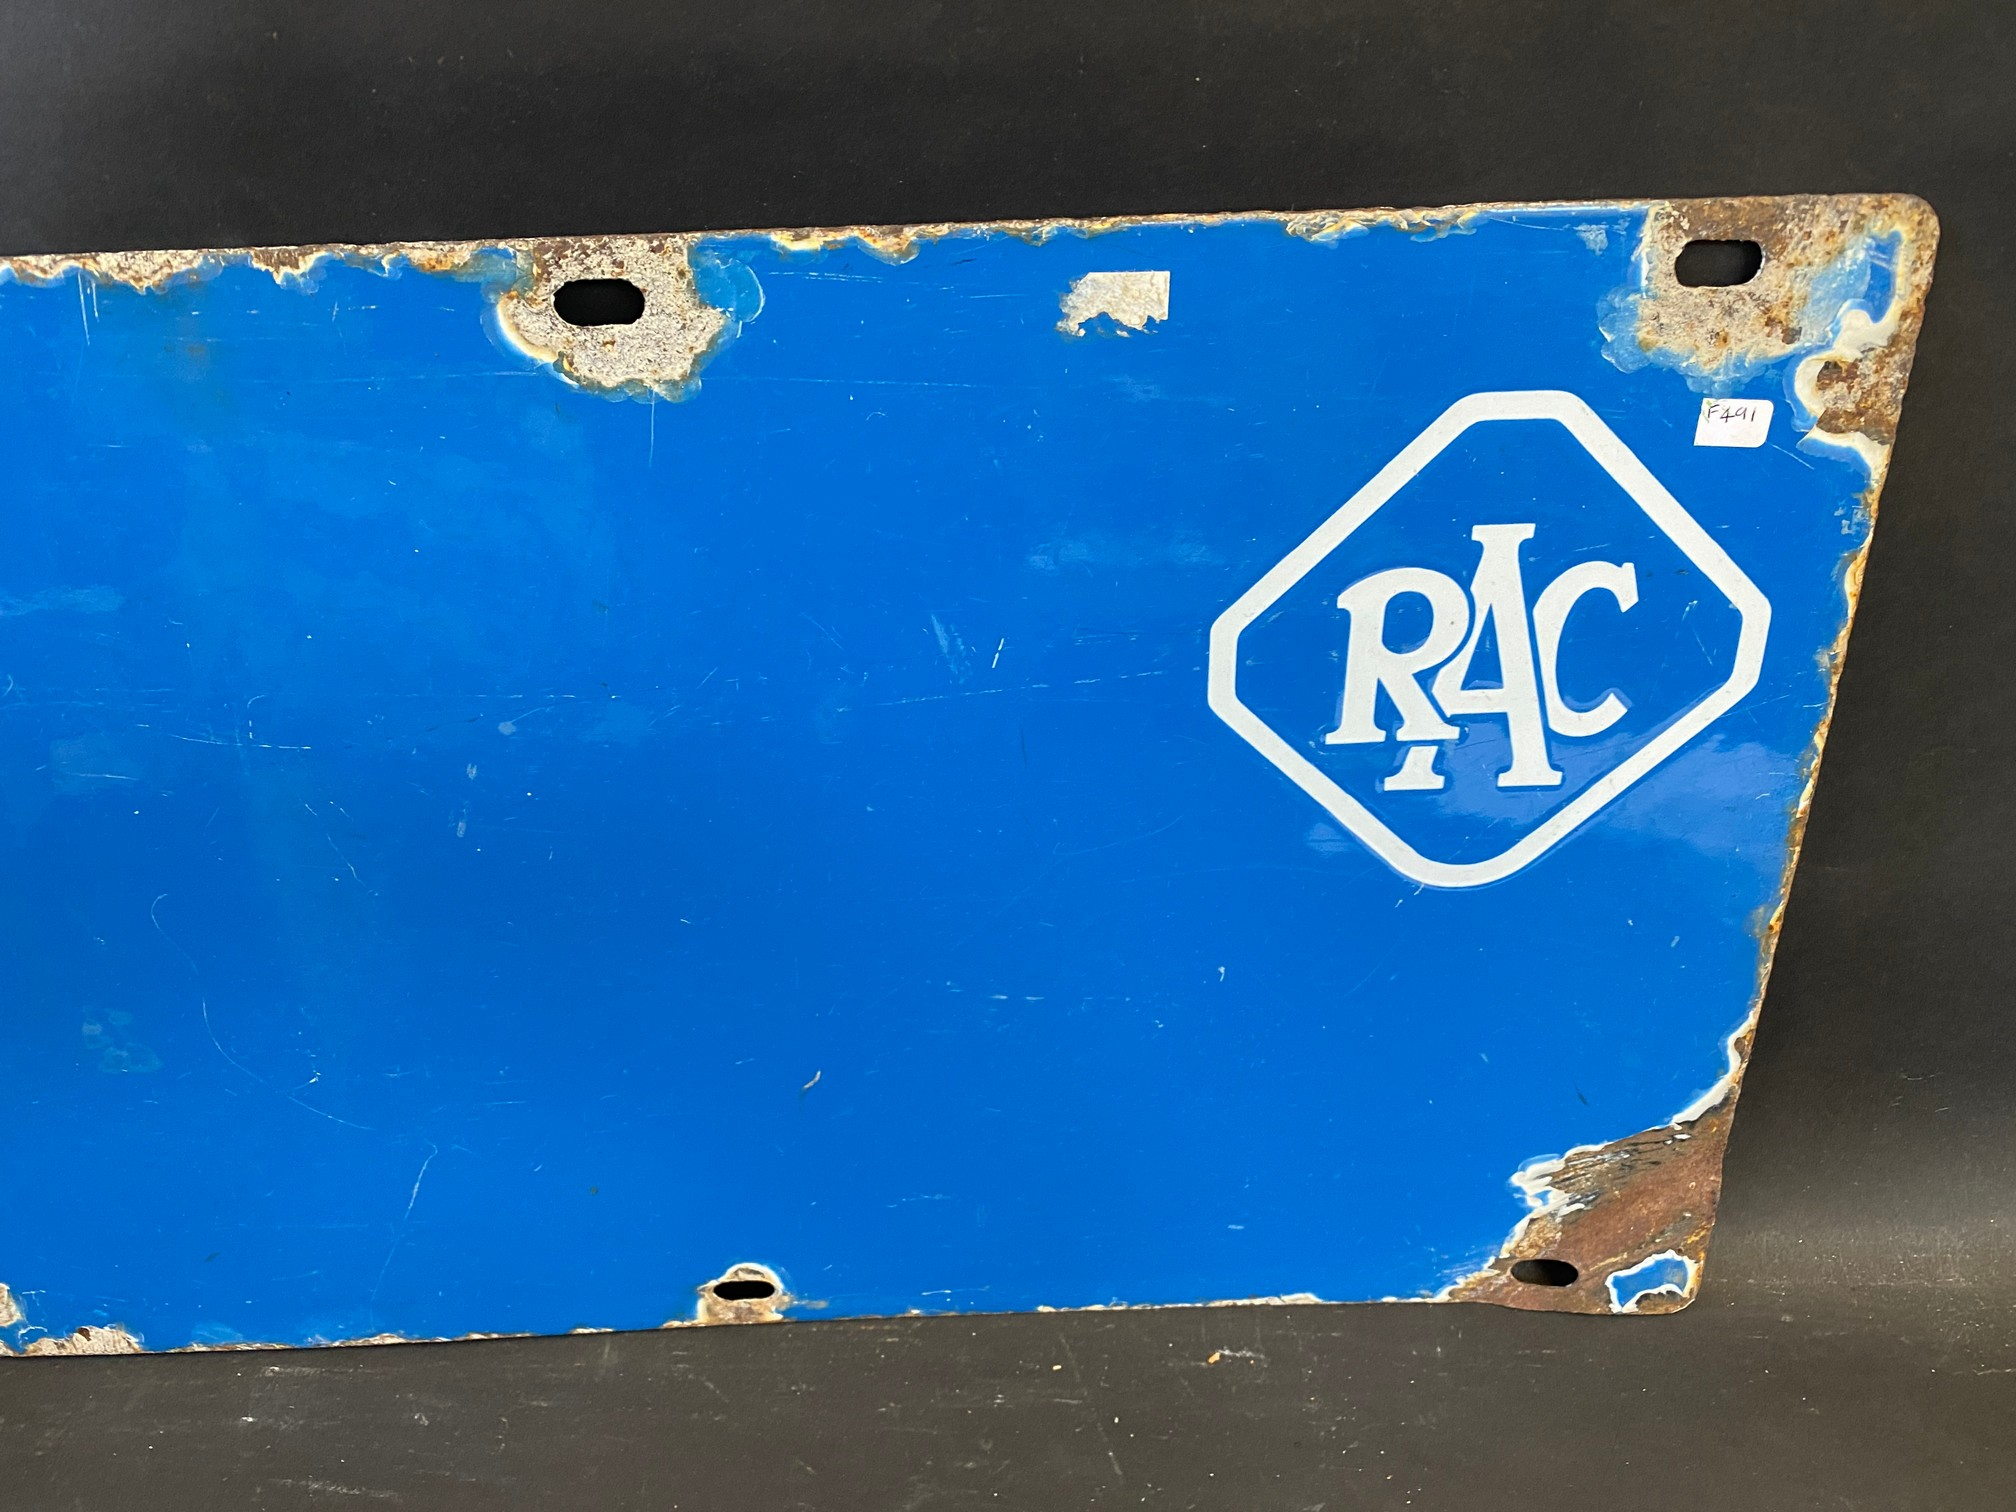 """An RAC blue and white double sided directional arrow sign by Bruton, 353/4 x 12"""". - Image 2 of 4"""